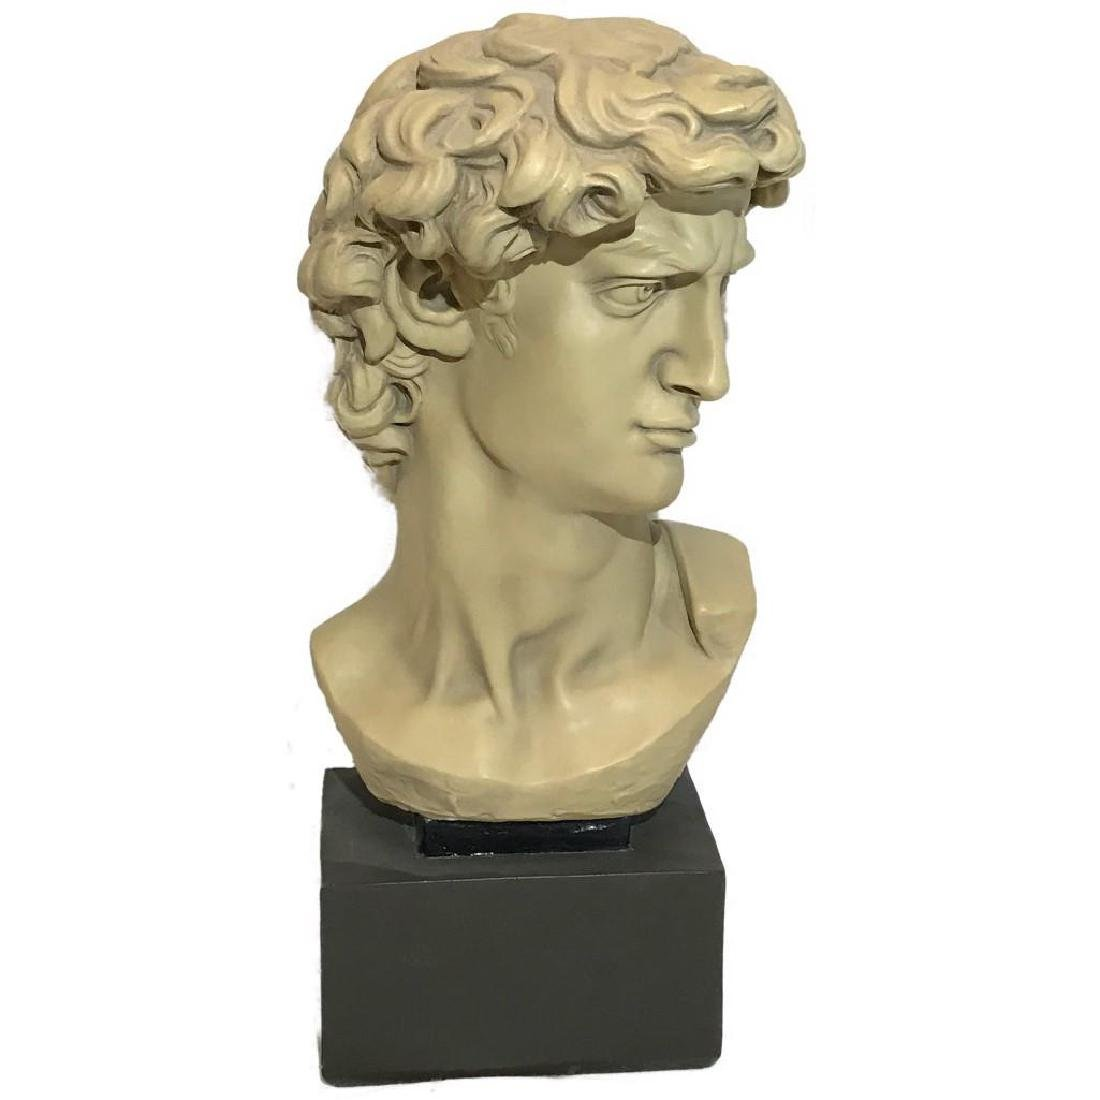 Faux Marble bust of Michelangelo's David